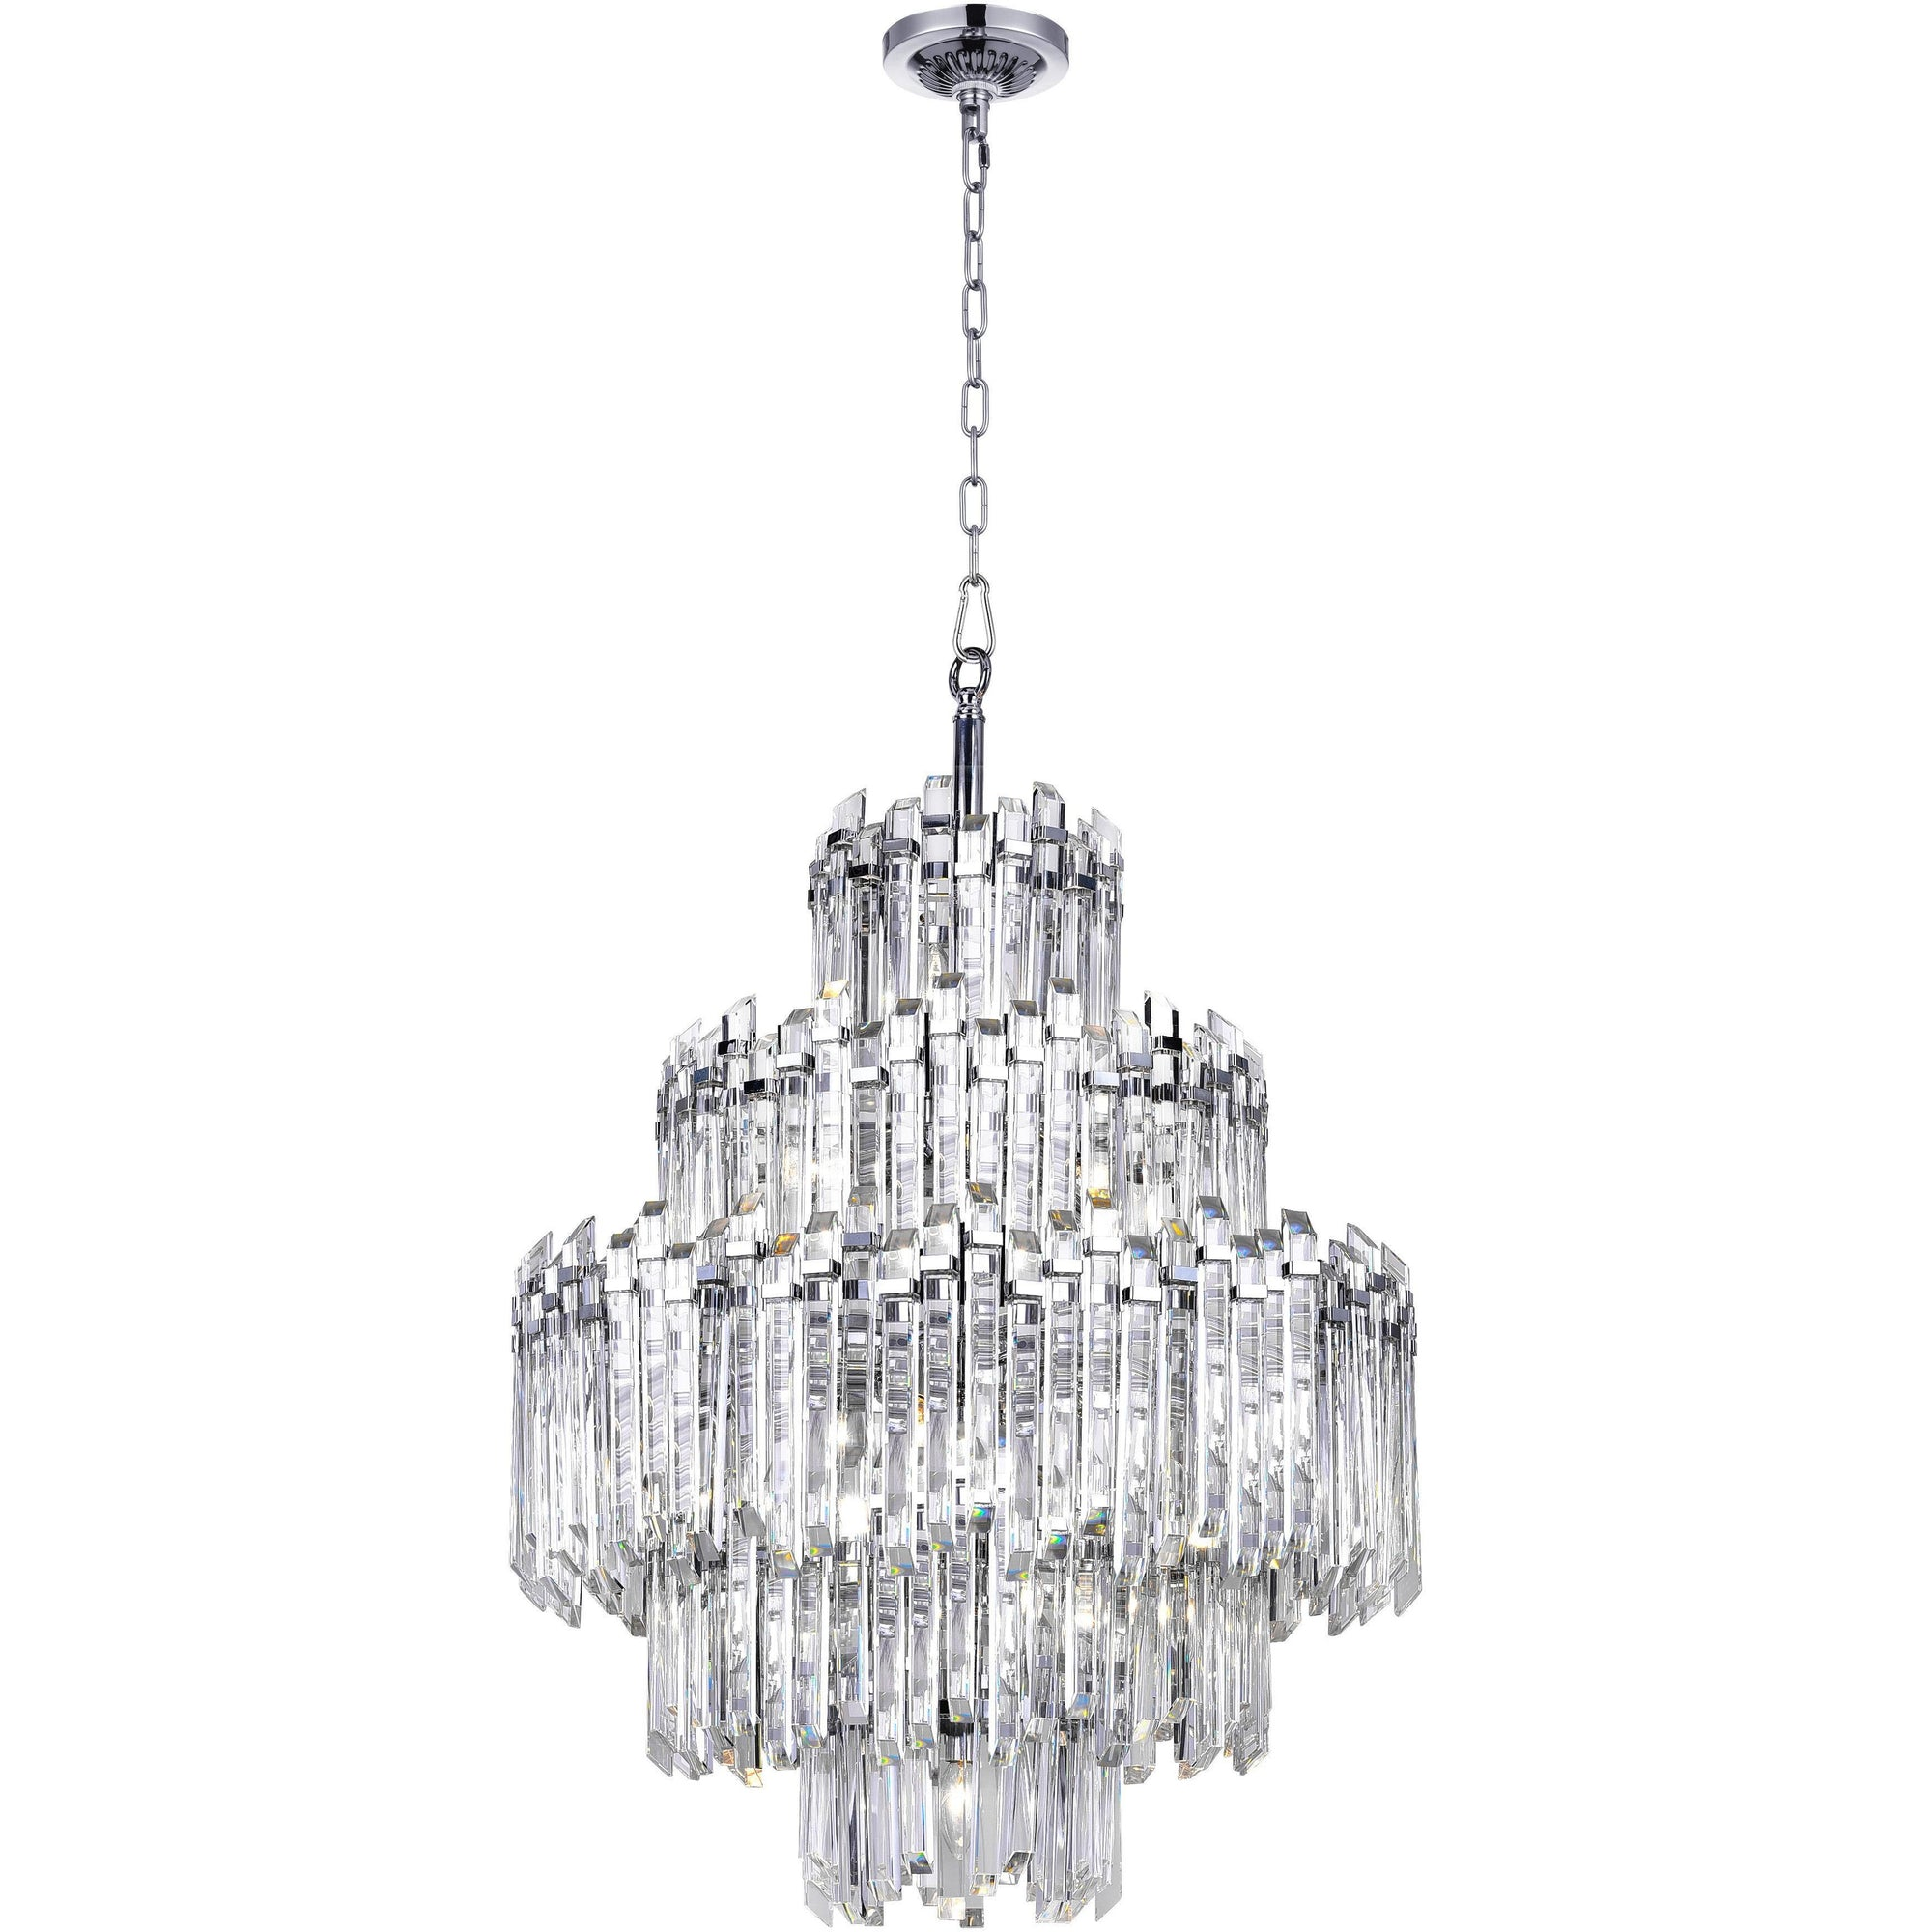 CWI Lighting Chandeliers Chrome / K9 Clear Henrietta 15 Light Chandelier with Chrome Finish by CWI Lighting 1065P28-15-601